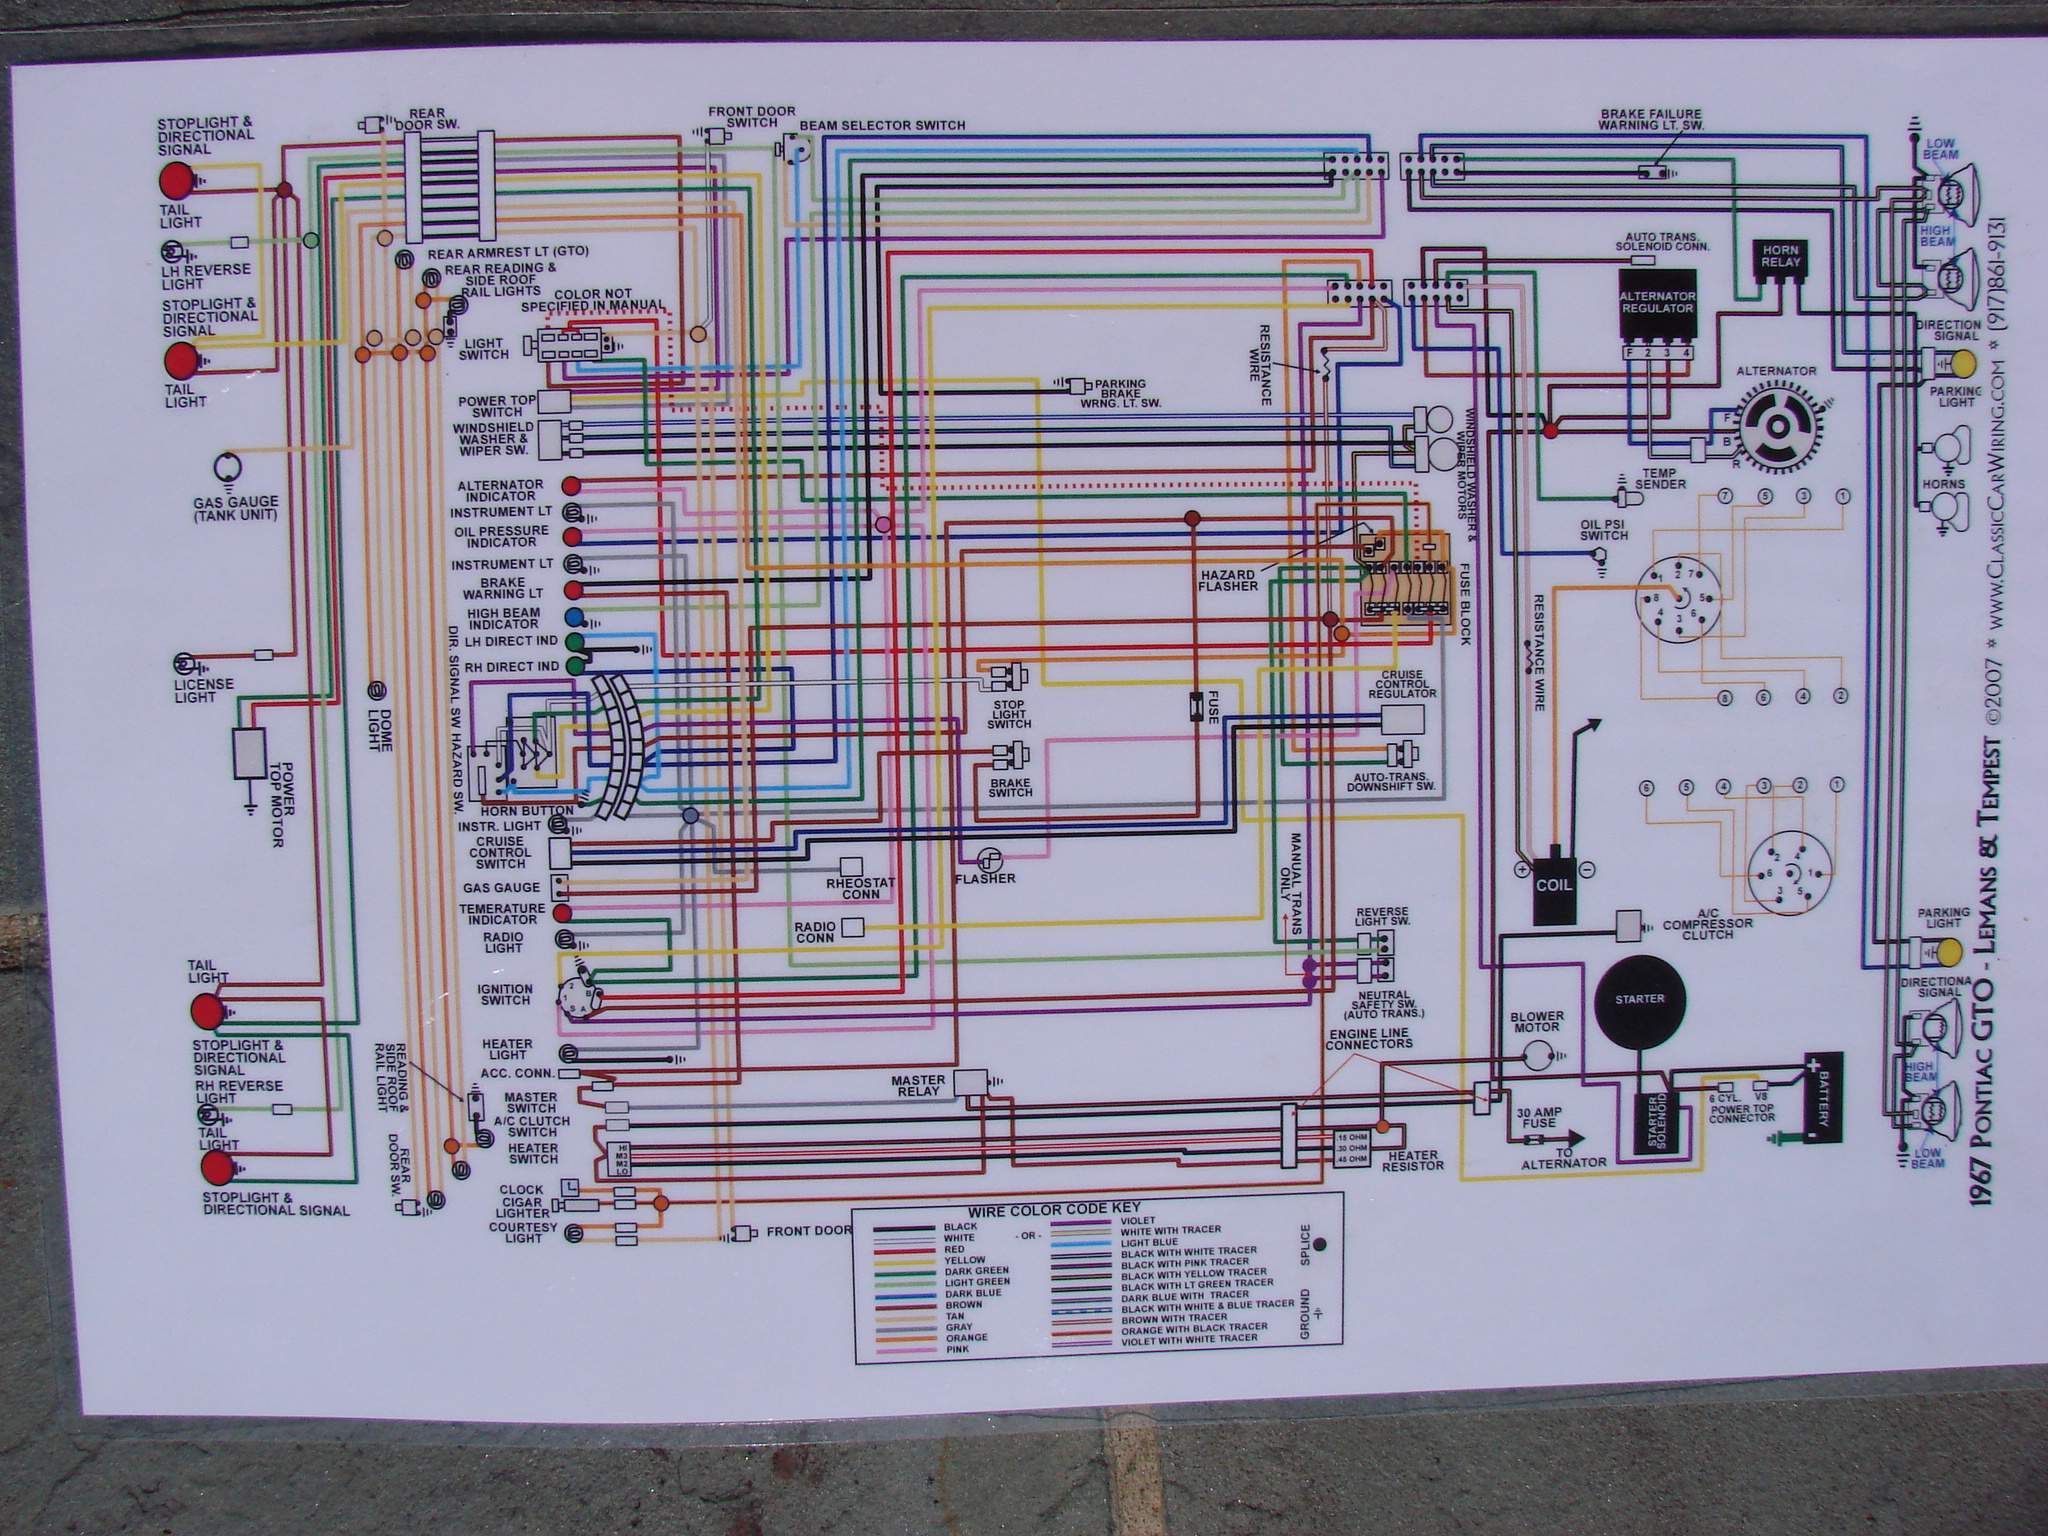 1970 chevelle wiring harness solidfonts 1970 chevelle fuse box diagram automotive wiring diagrams